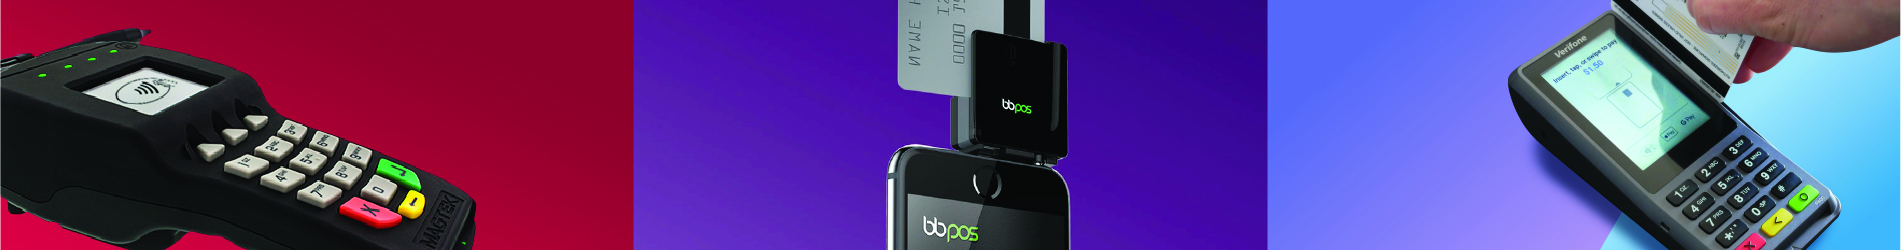 Stripe Card Readers: What Are My Options?